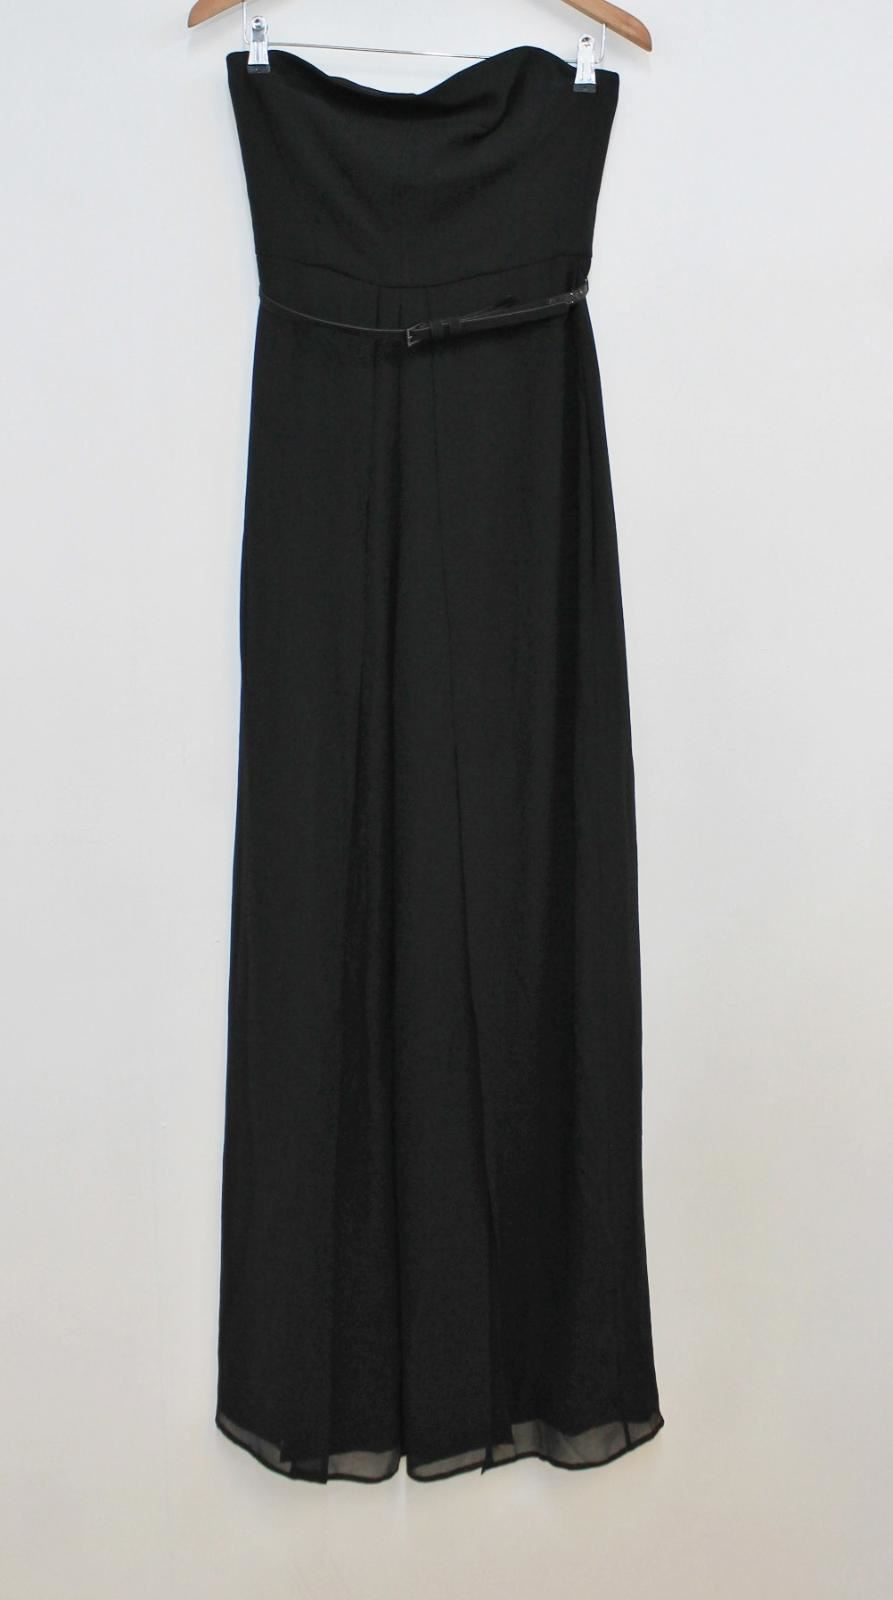 Bnwt Halston Heritage Ladies Black Bandeau Neckline Slit Jumpsuit Us4 Uk8